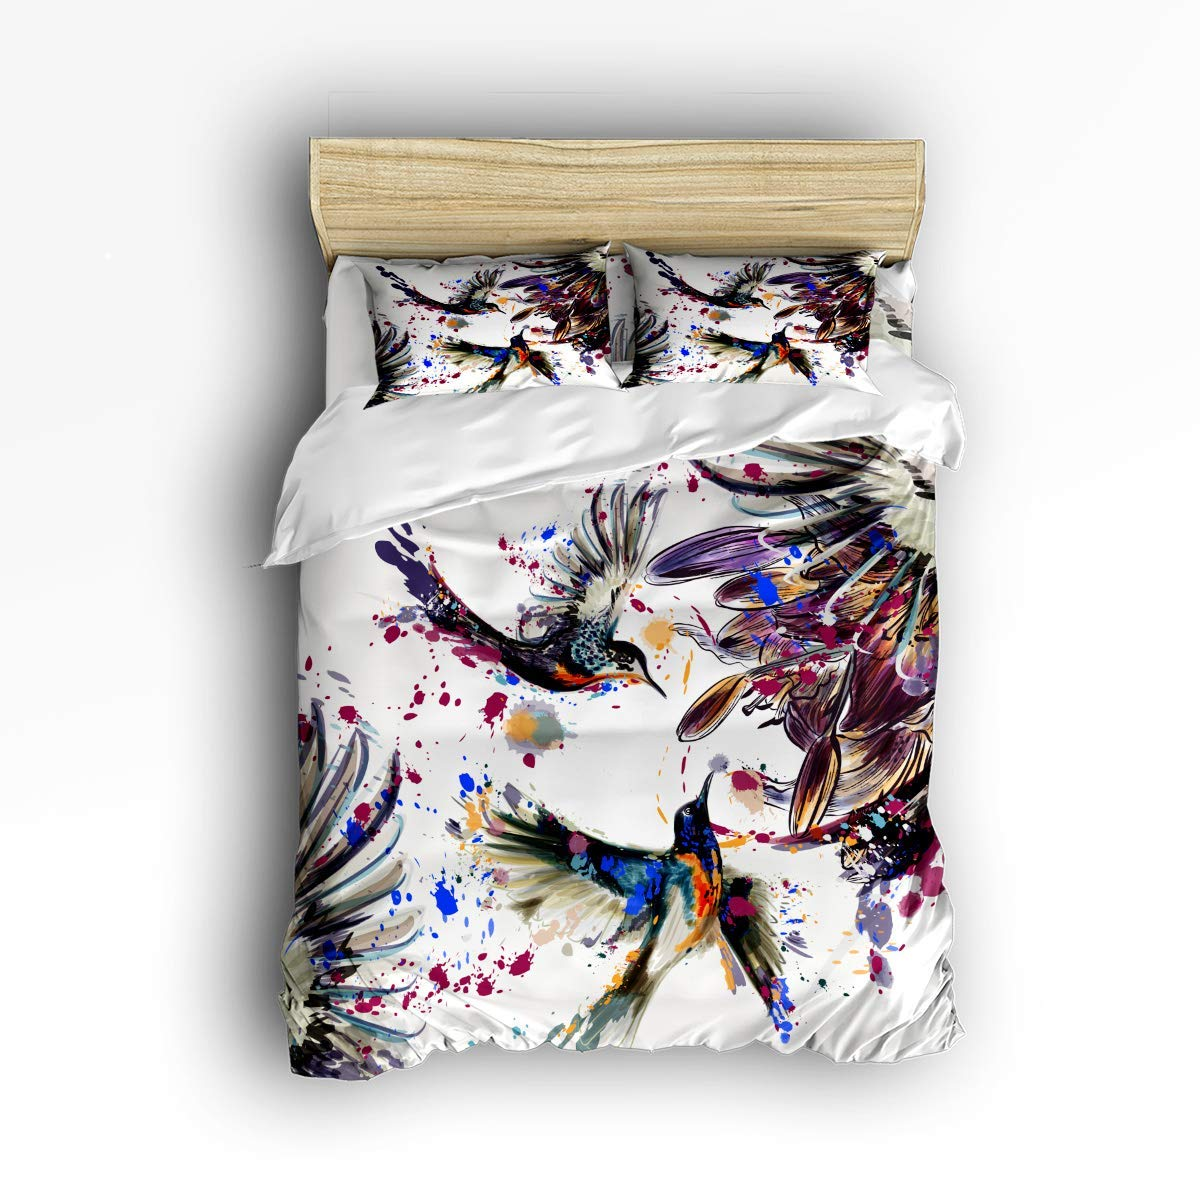 COVASA Luxury 4-Piece Bedding Set Art with Lily Flowers Birds and Color Splashes in Watercolor Painting Hummingbirds Duvet Covers Set Duvet Cover Bed Sheet Pillow Cases Queen Pattern